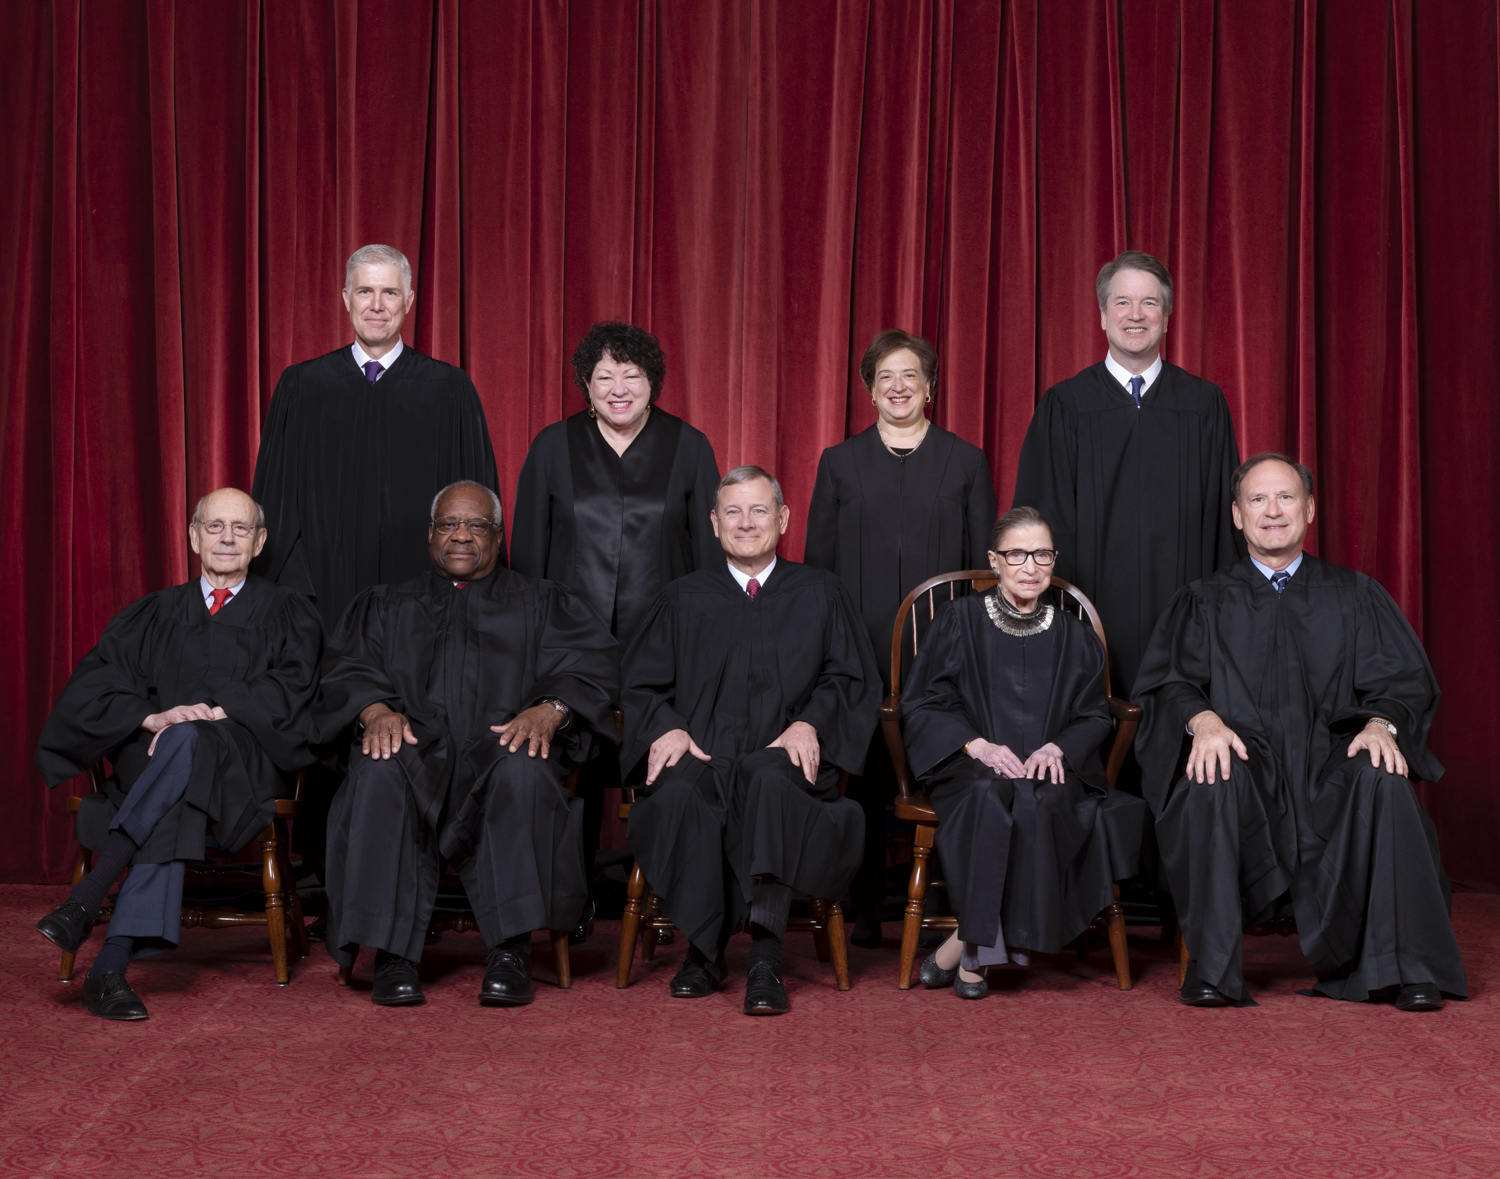 The Roberts Court, November 30, 2018. Seated, from left to right: Justices Stephen G. Breyer and Clarence Thomas, Chief Justice John G. Roberts, Jr., and Justices Ruth Bader Ginsburg and Samuel A. Alito. Standing, from left to right: Justices Neil M. Gorsuch, Sonia Sotomayor, Elena Kagan, and Brett M. Kavanaugh. Photograph by Fred Schilling, Supreme Court Curator's Office.